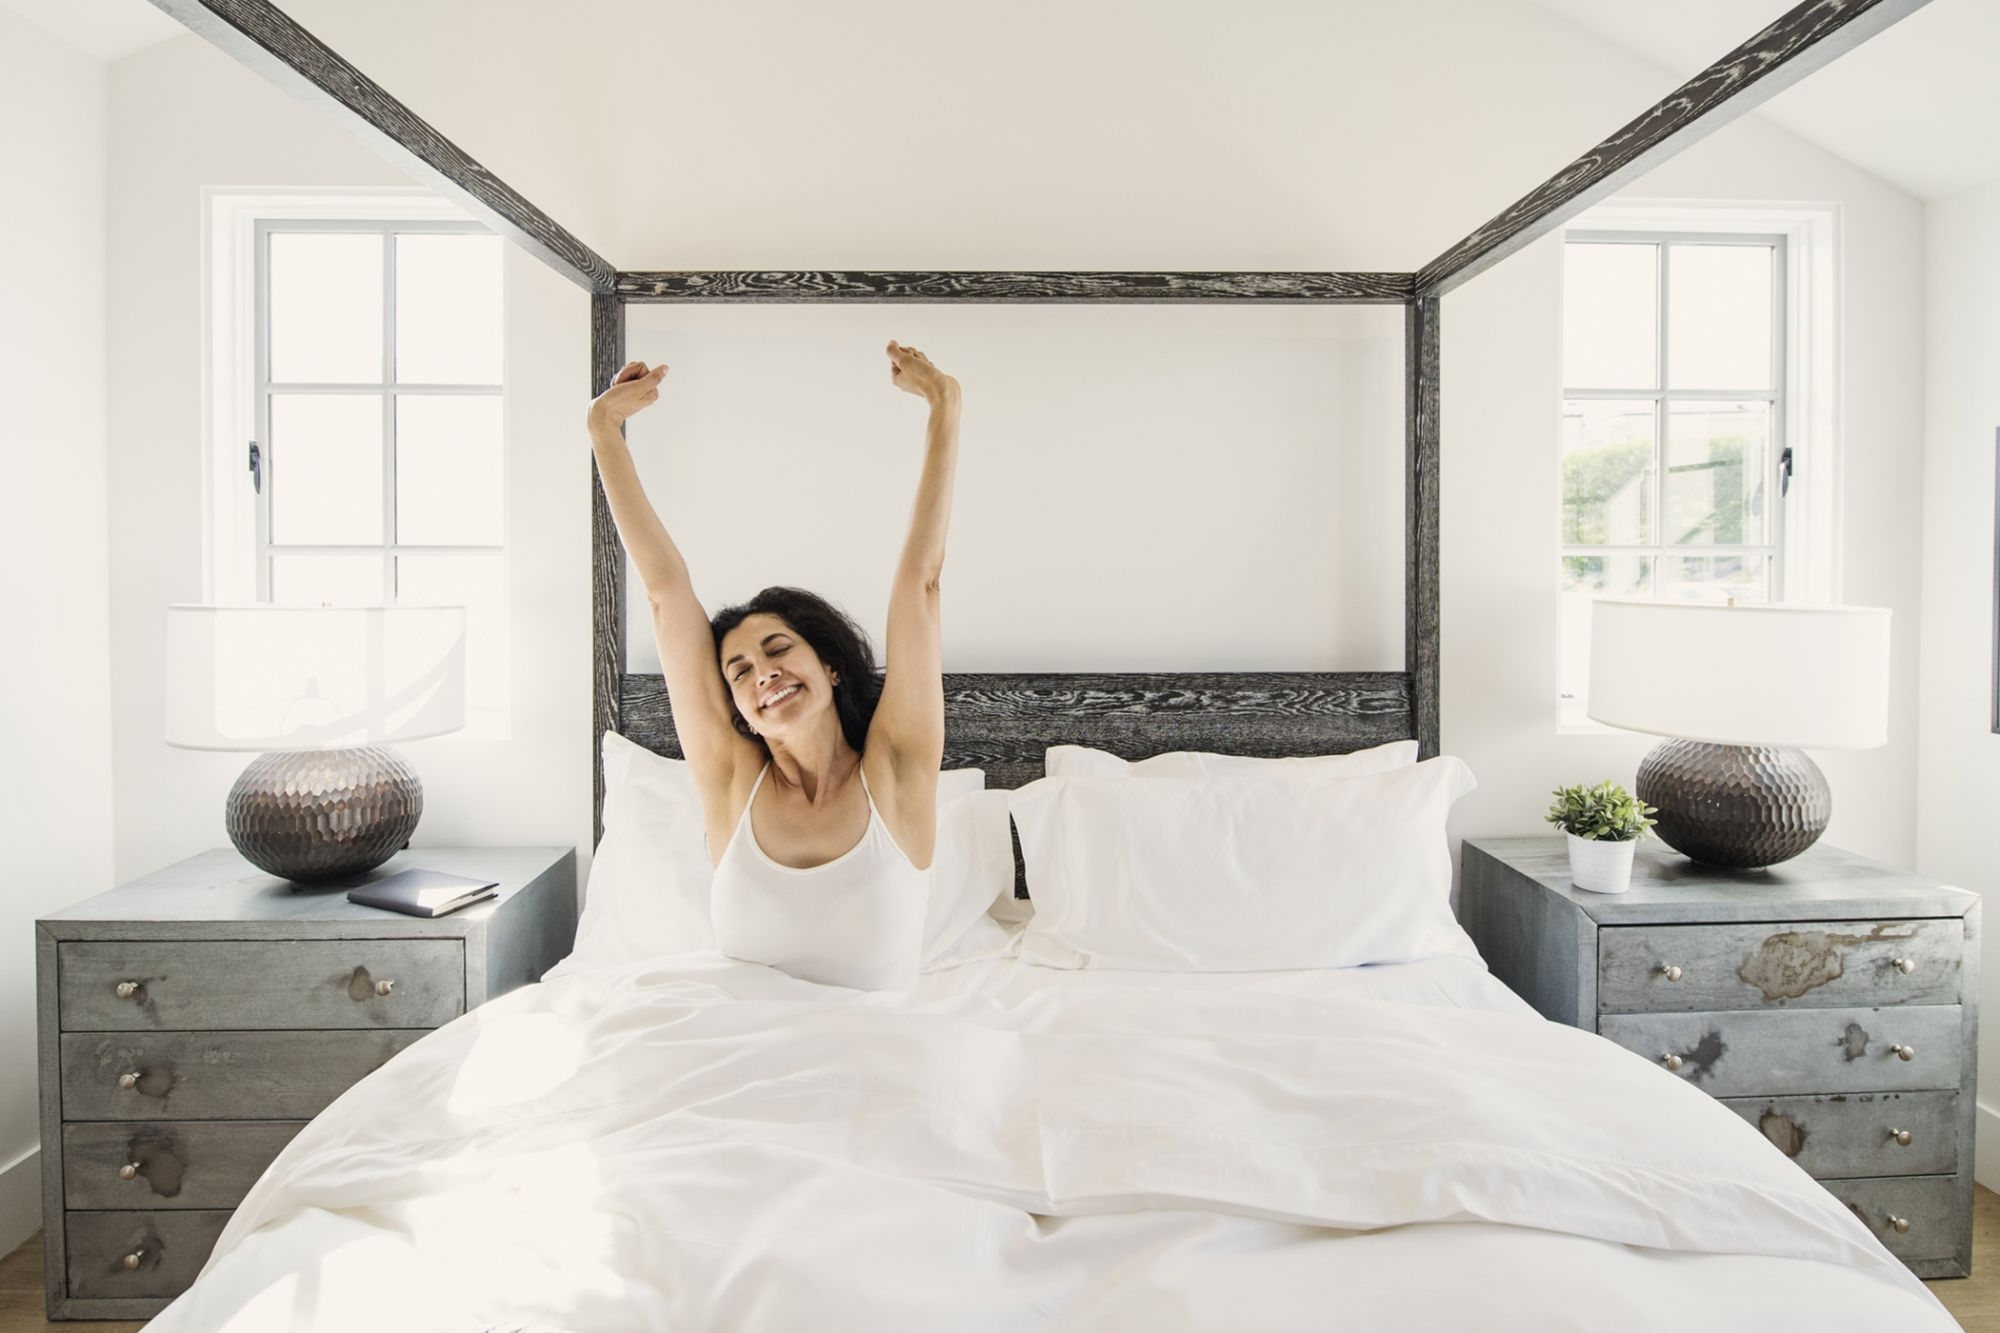 22 Guaranteed Ways to Wake Up Early and Energized